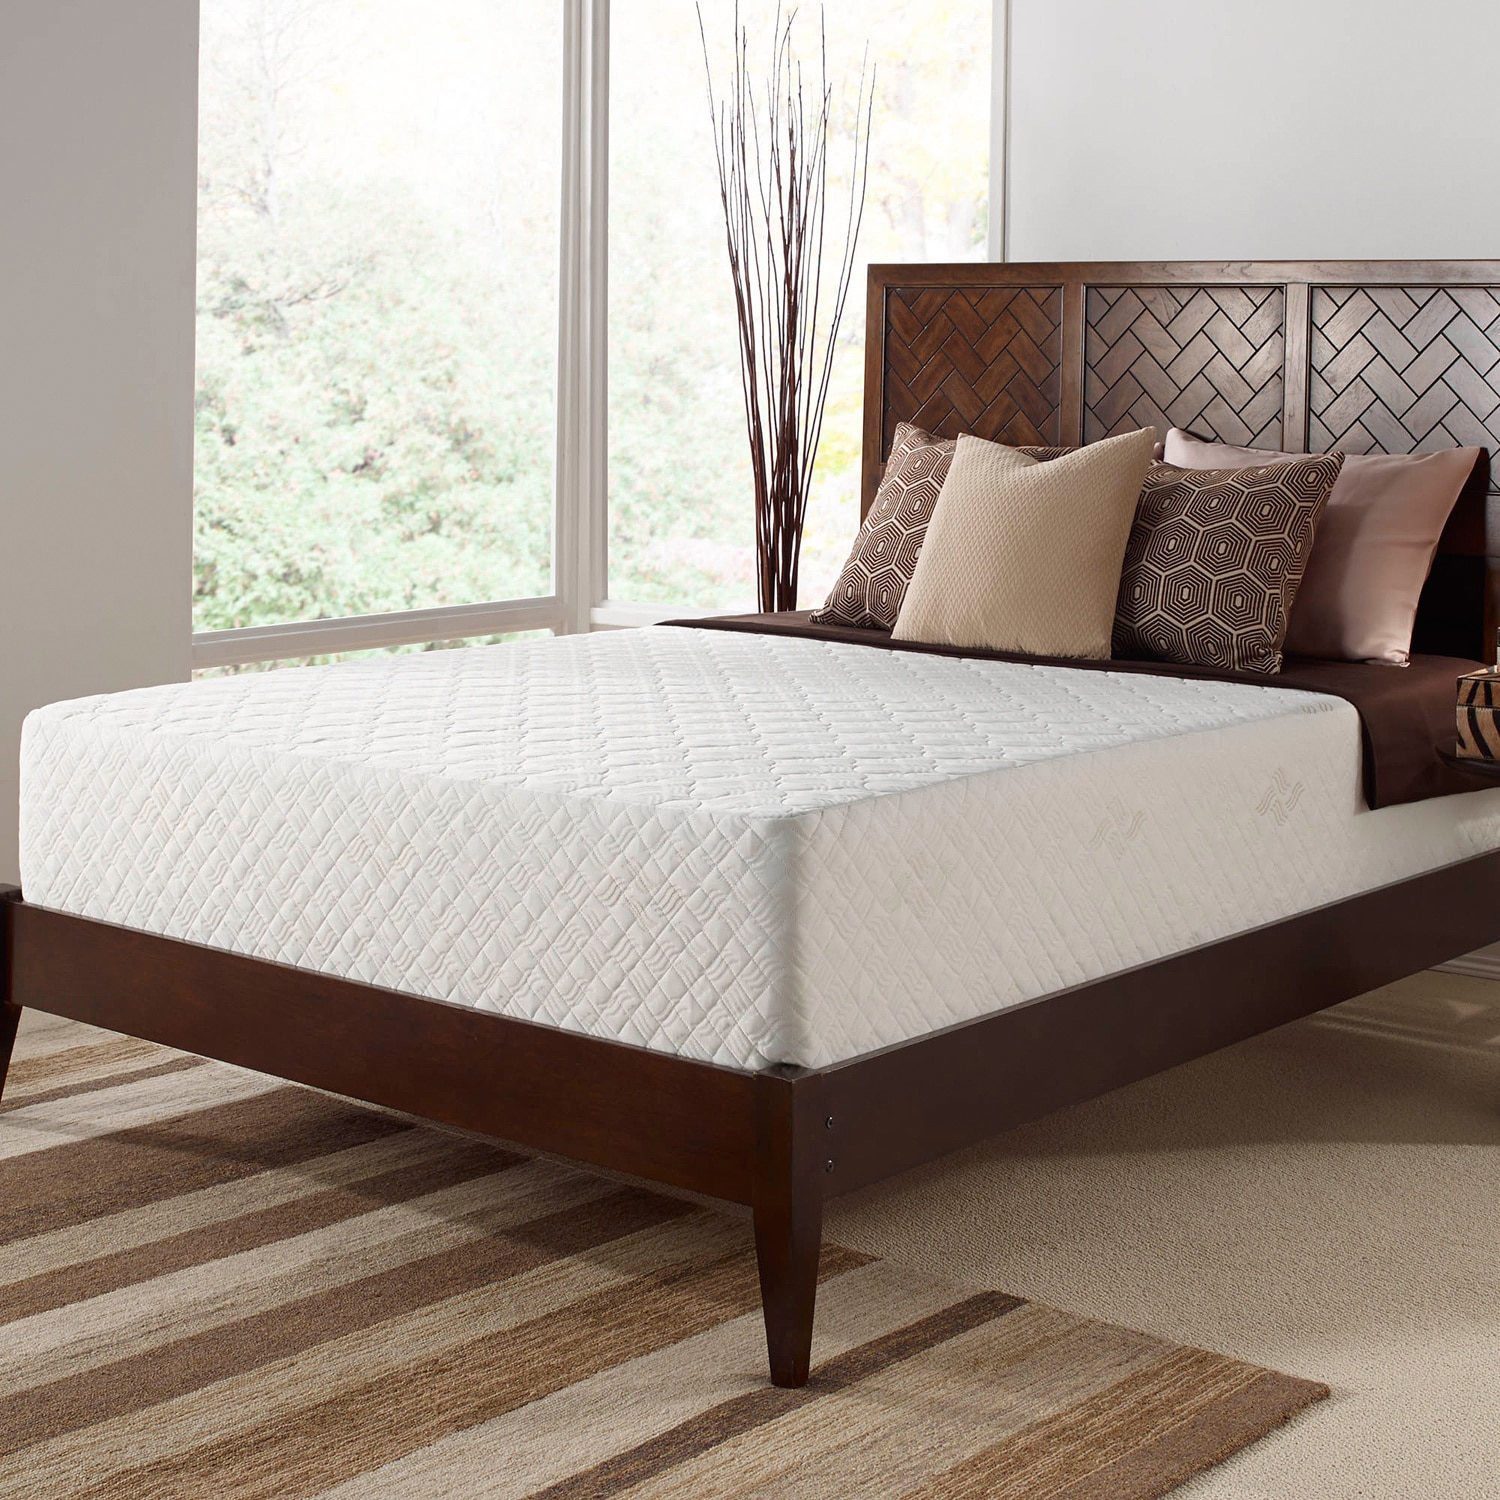 Touch of fort Deluxe 12 inch King size Memory Foam Mattress